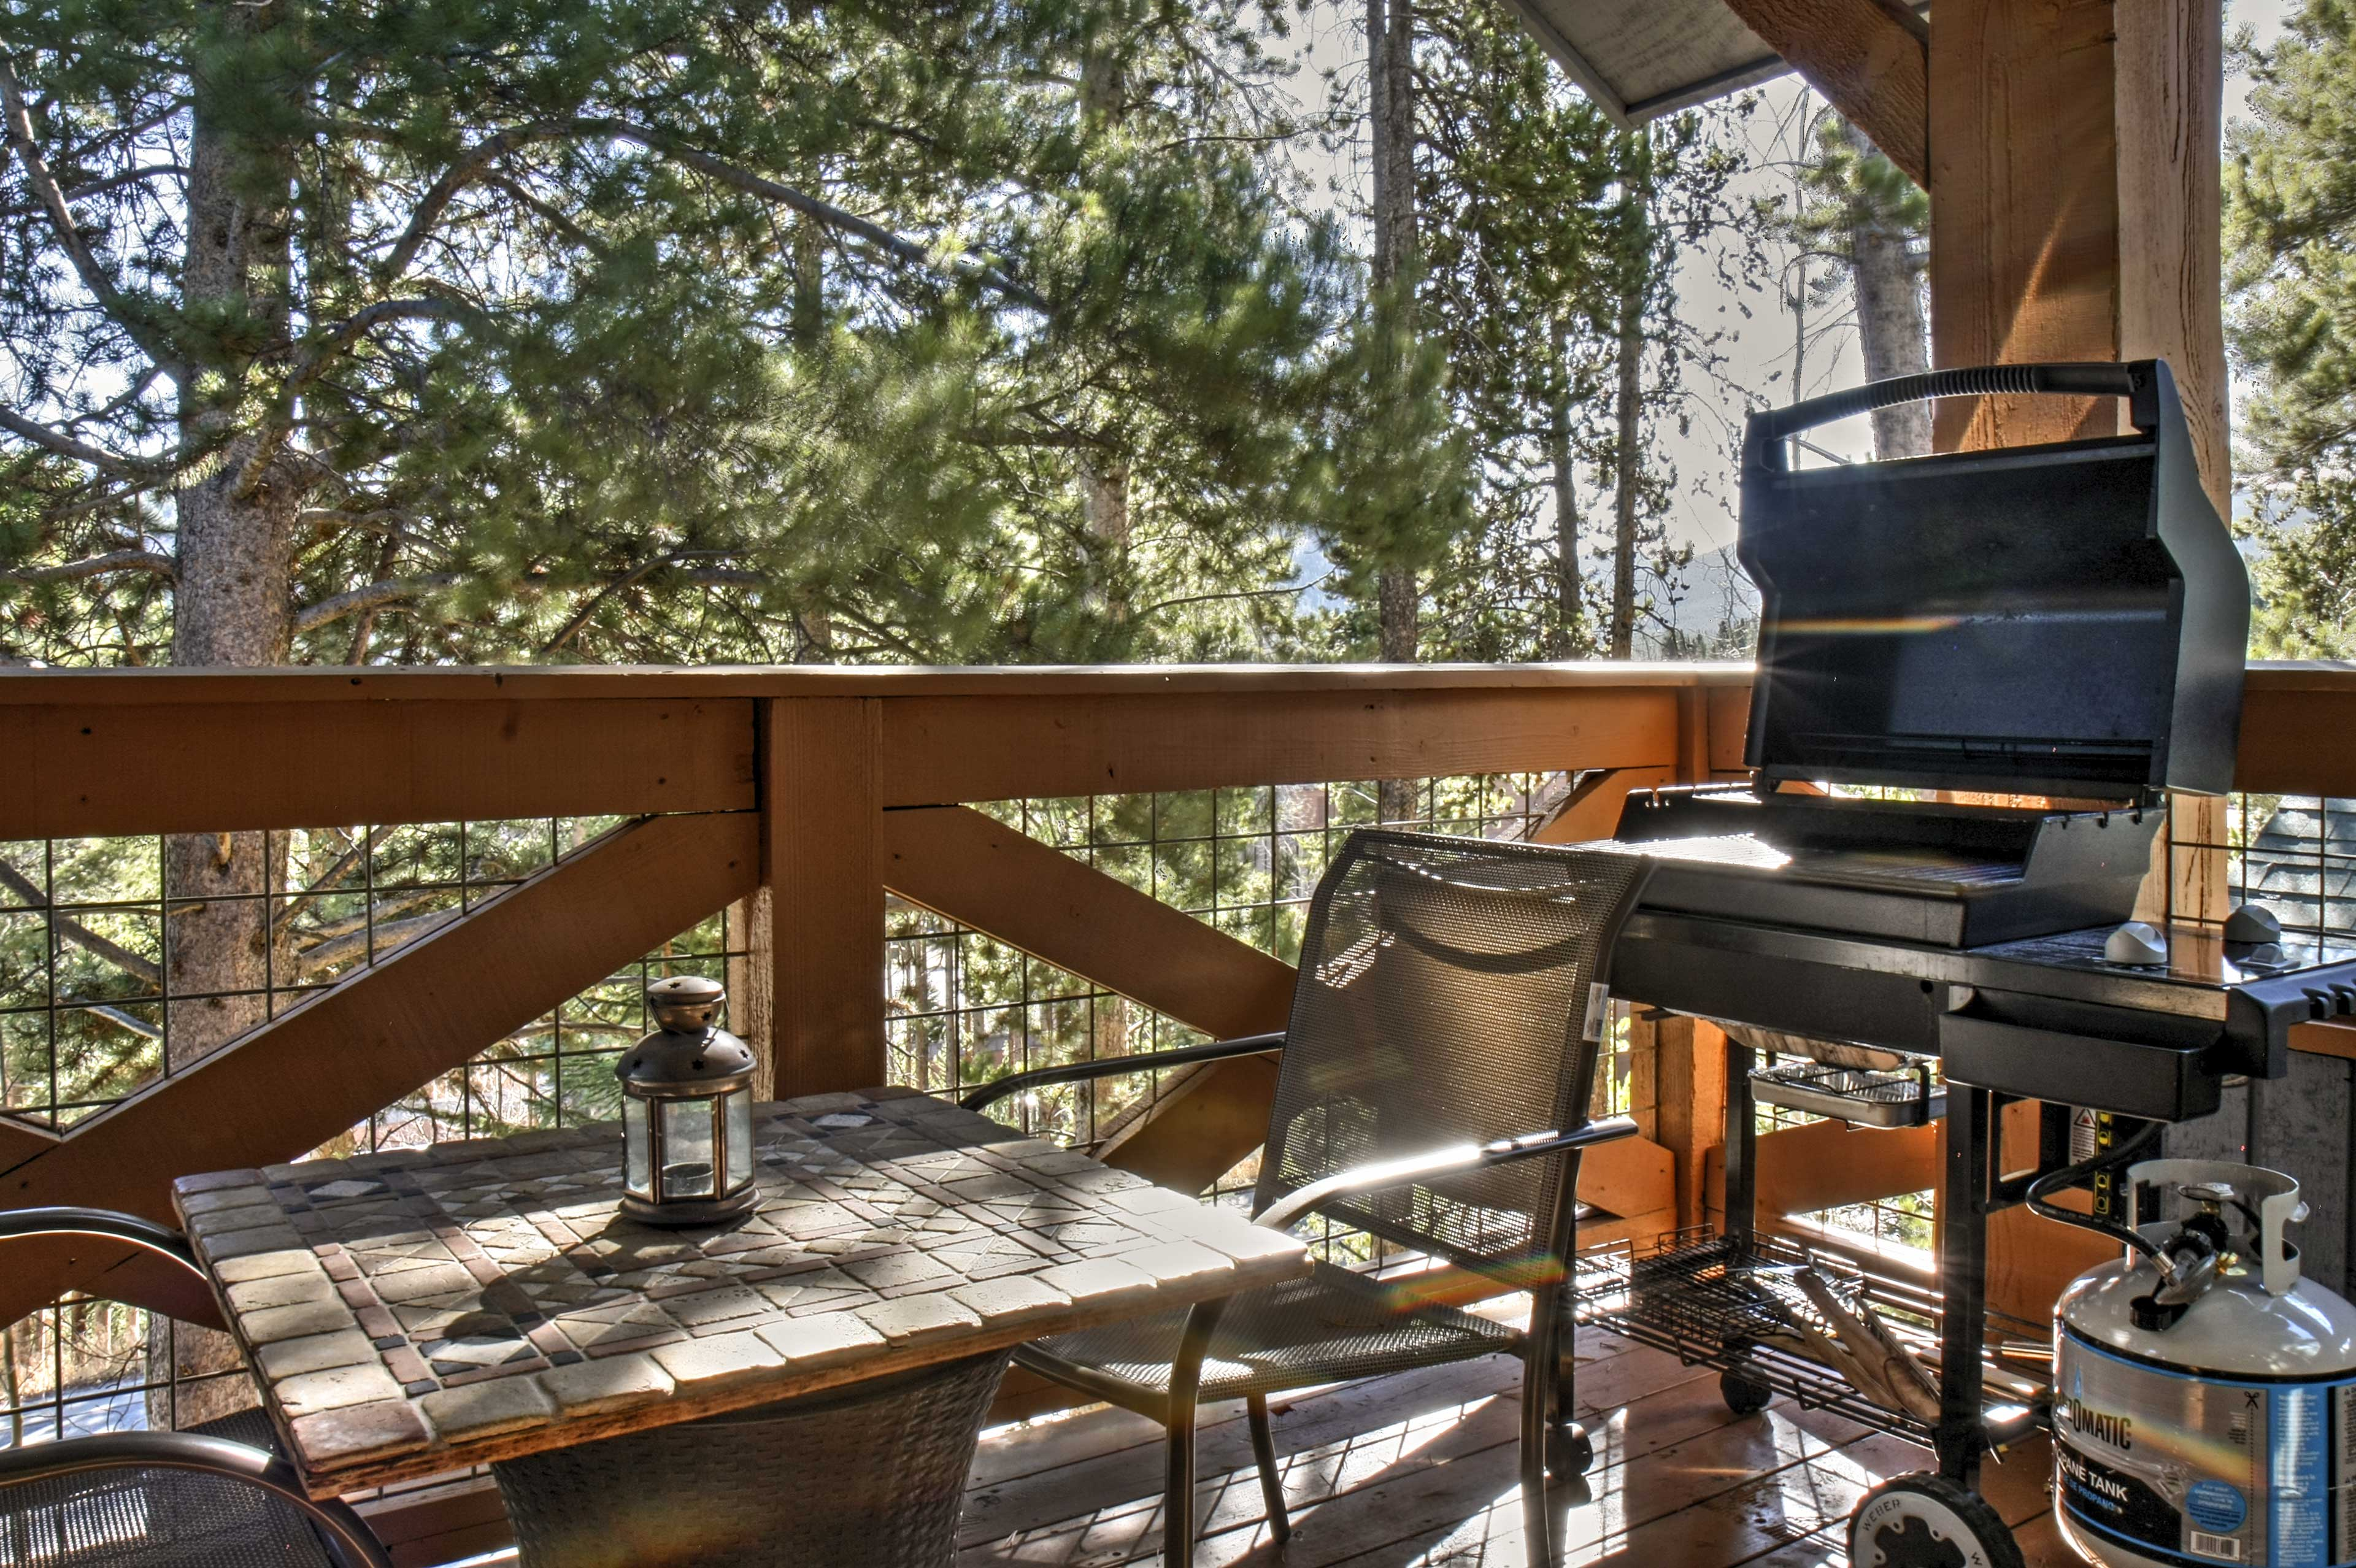 Head outside to the deck featuring a gas grill and seating surrounded by pines.